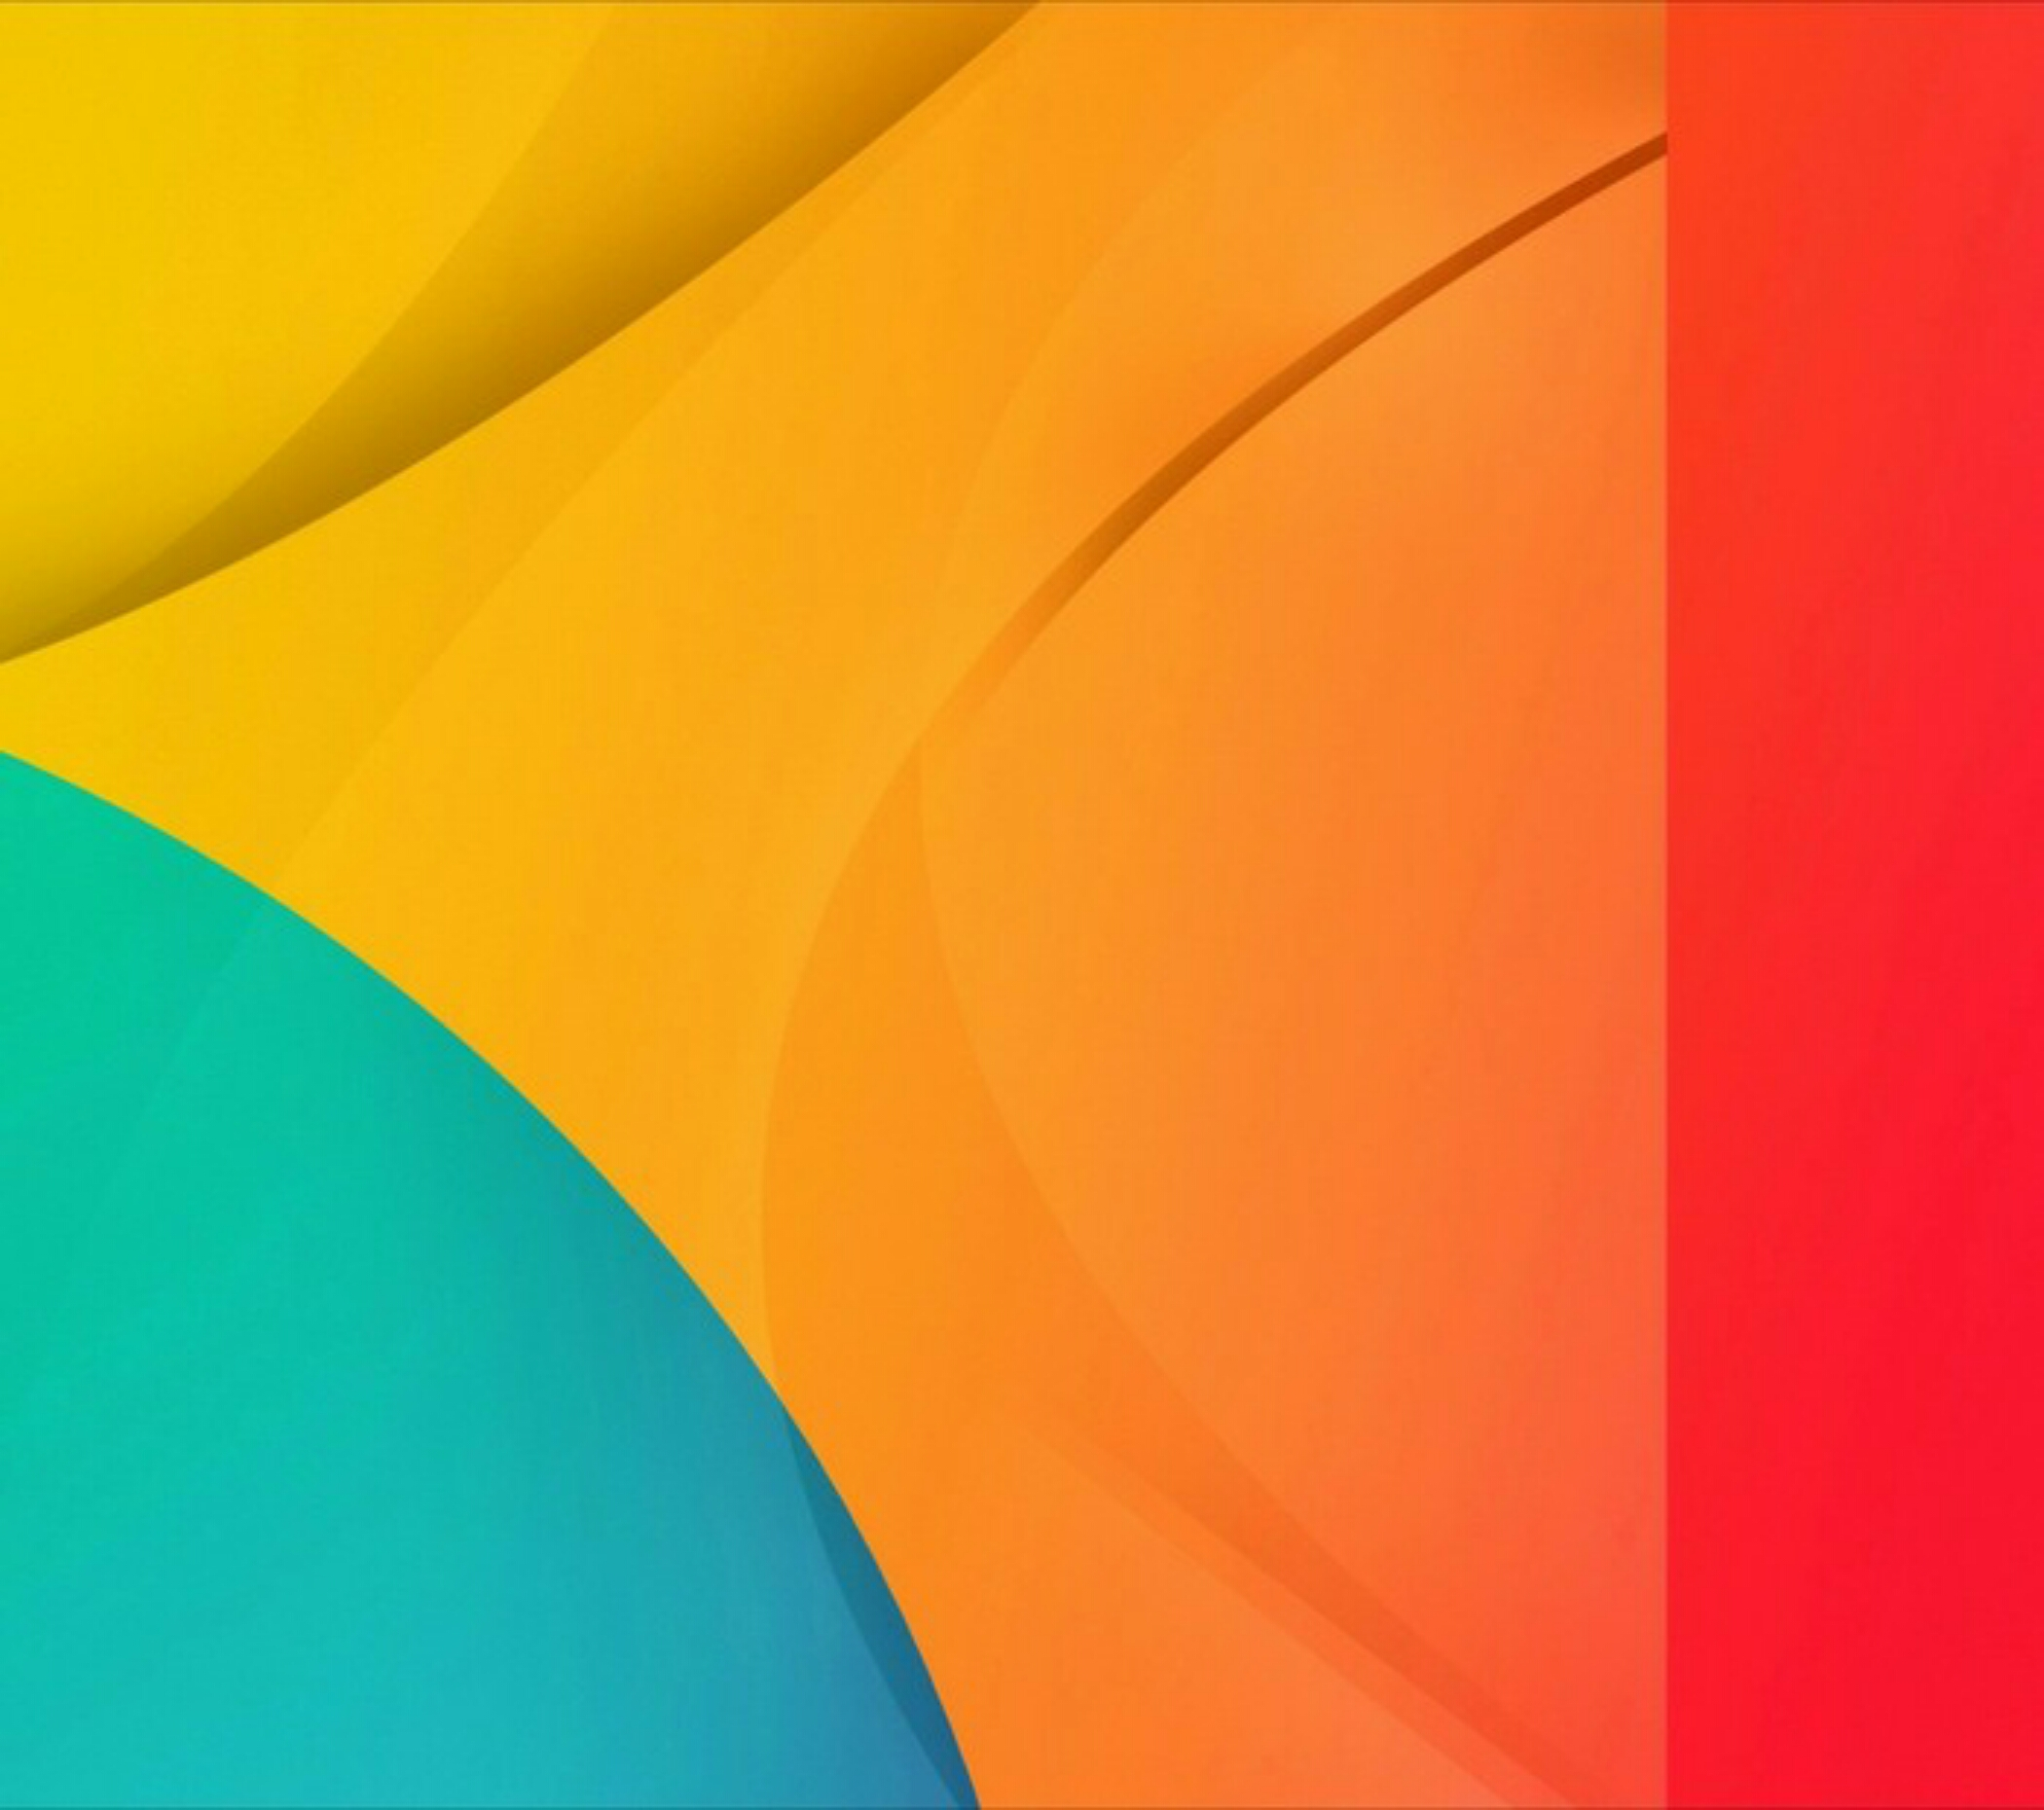 HD Android 5.0 Lollipop Wallpapers (1)